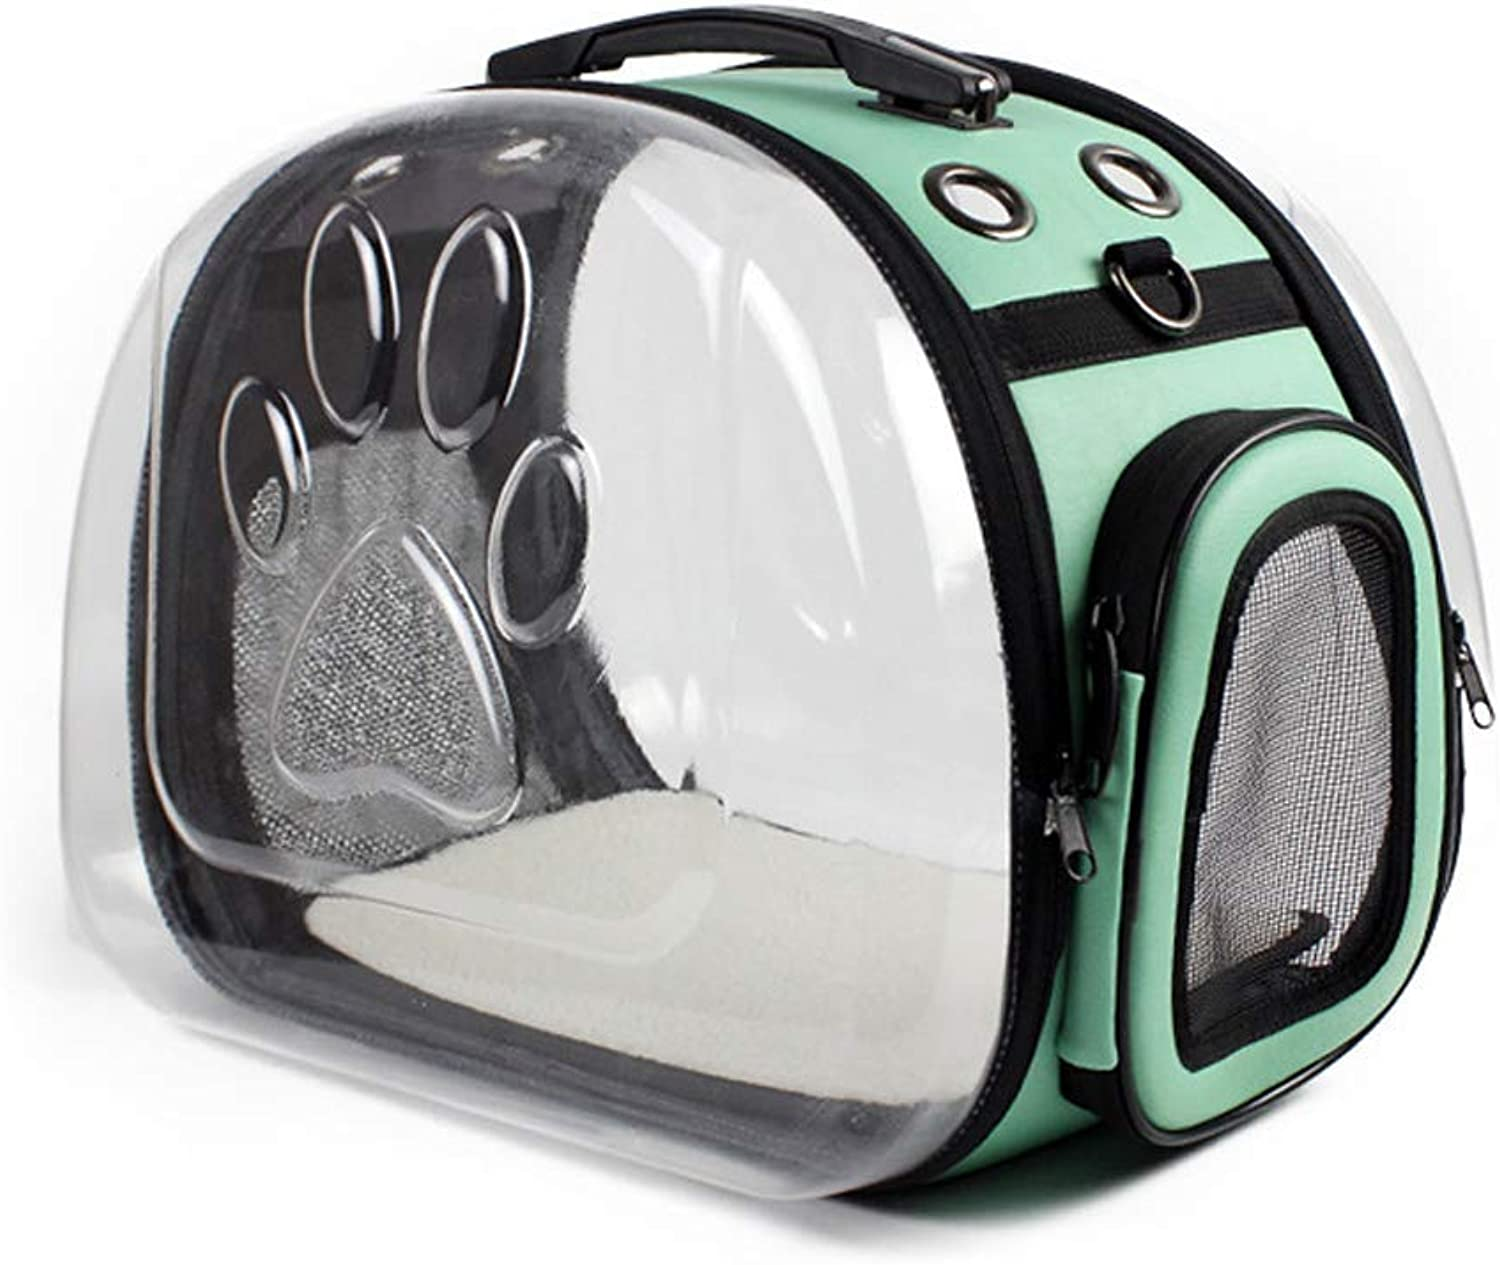 Pet Carrier Seat Foldable Pet Carrier Siling Animal Transparent Bag for Small Dogs, Cats, Puppies, Kittens Pet Carrier Crate